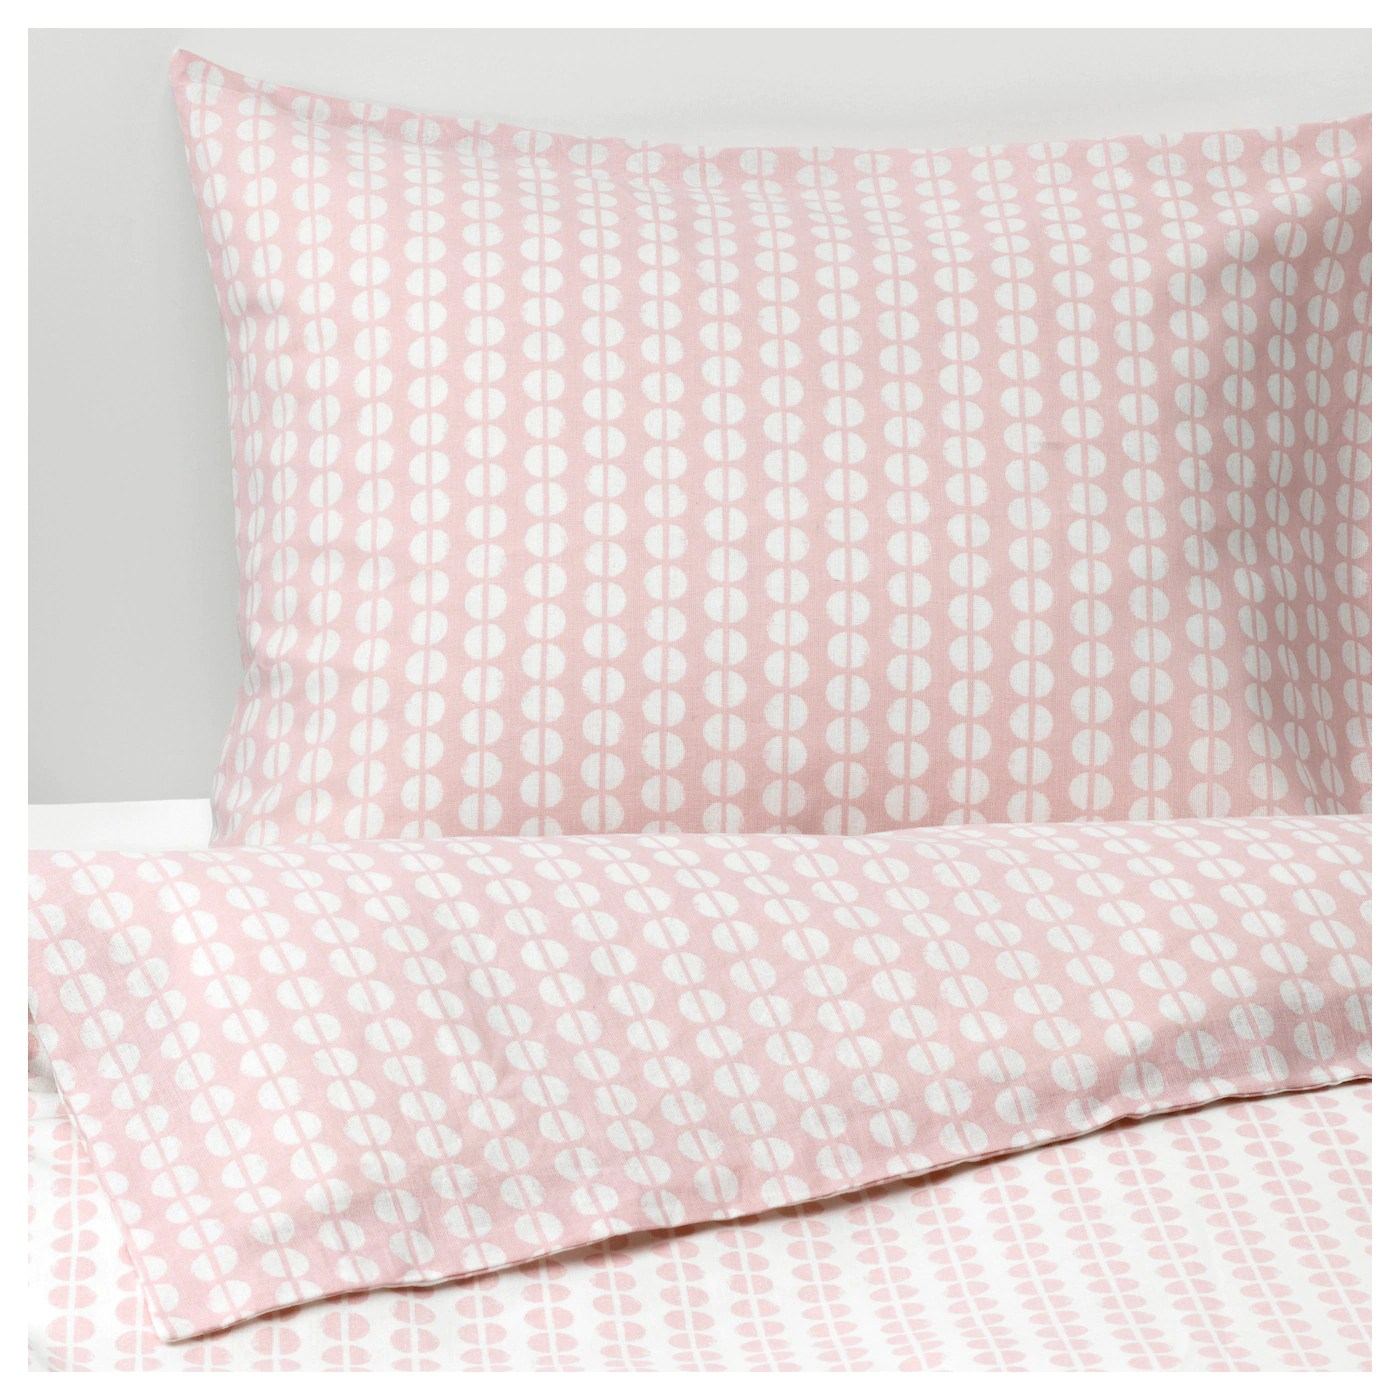 Rosa Bettwäsche Ikea - FjÄllvedel Quilt Cover And Pillowcase Pink